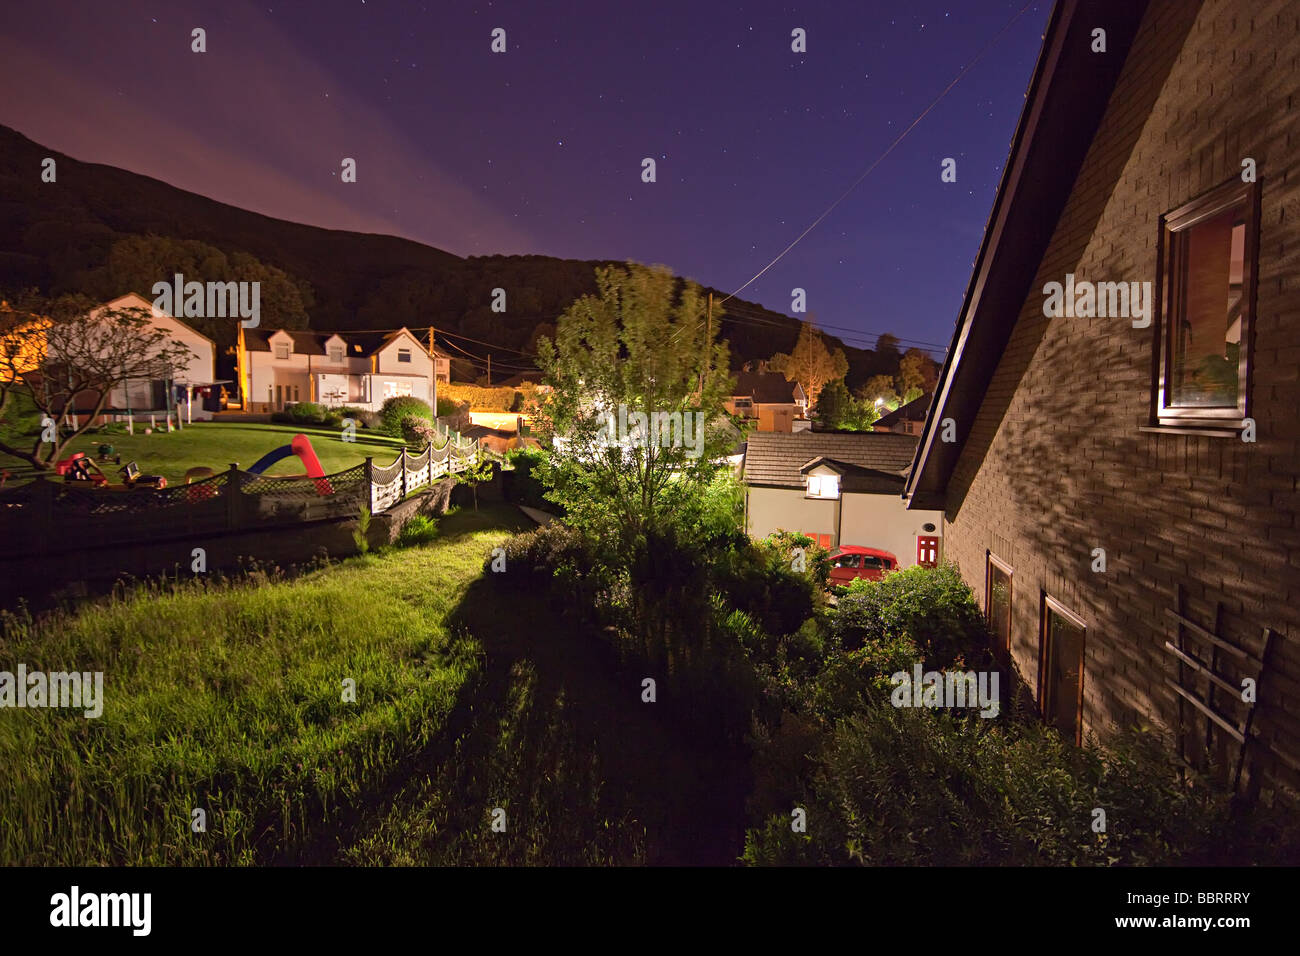 House garden and buildings in village at night with light from street lamps Llanfoist Wales UK - Stock Image